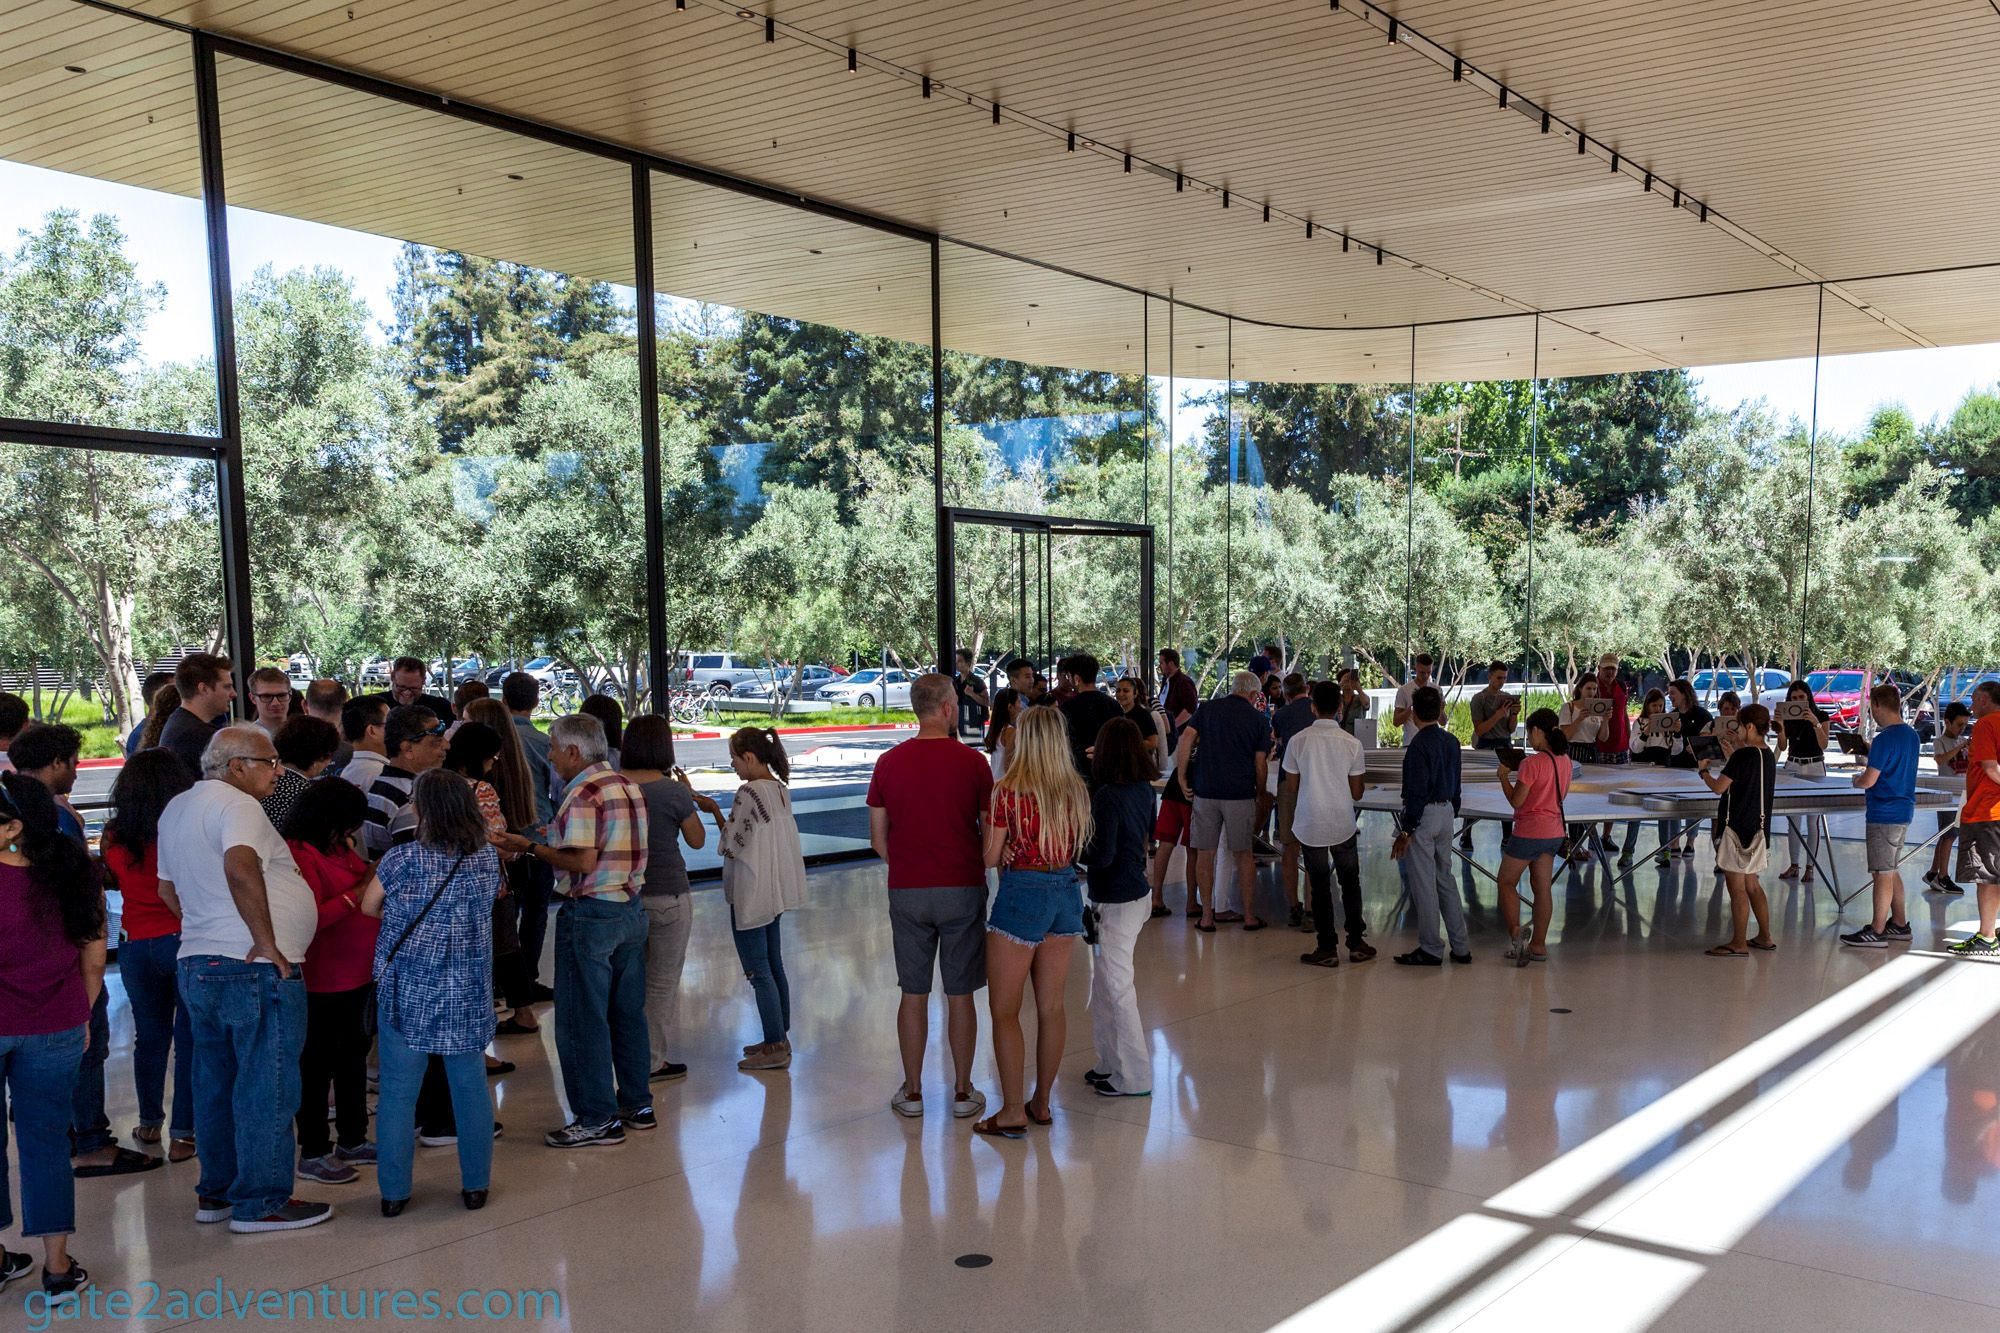 The Apple Park Visitor Center - Gate to Adventures